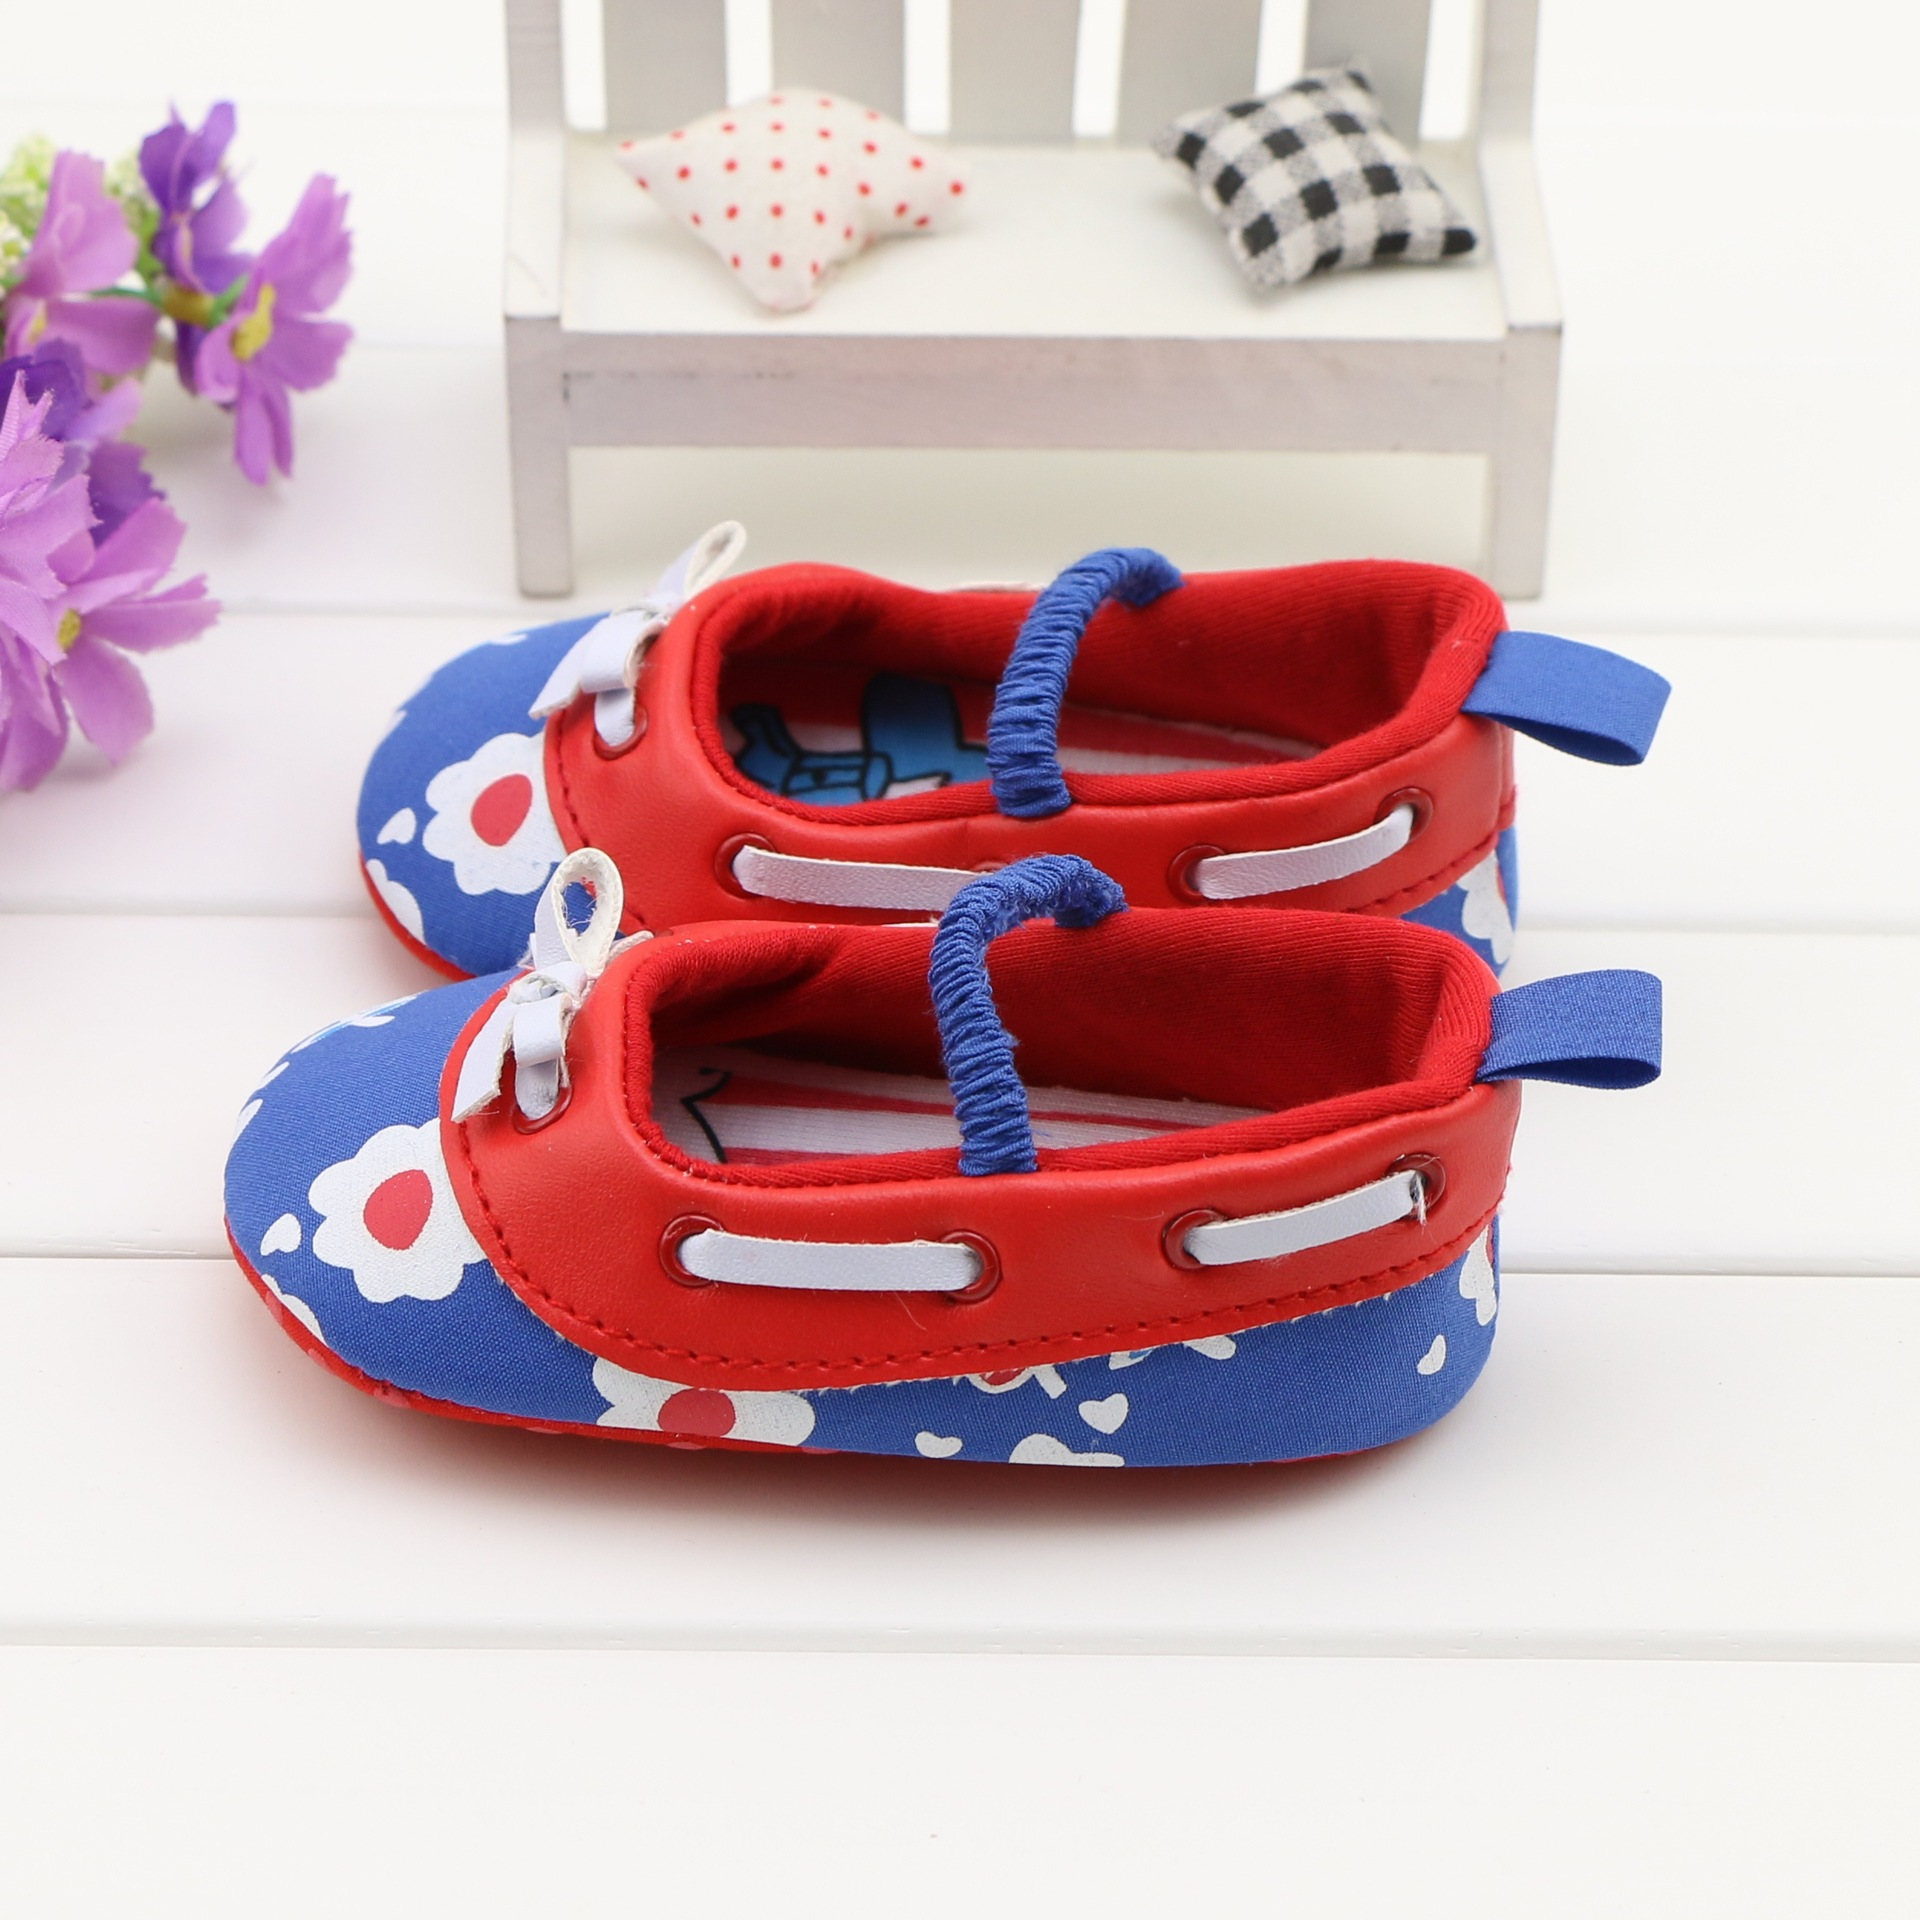 Baby Shoes 2018 New Polka Dot Bow Lace Trim Princess Shoes Baby Toddler Cute Shoes First Walkers High Quality Newborn Shoes Easy To Lubricate